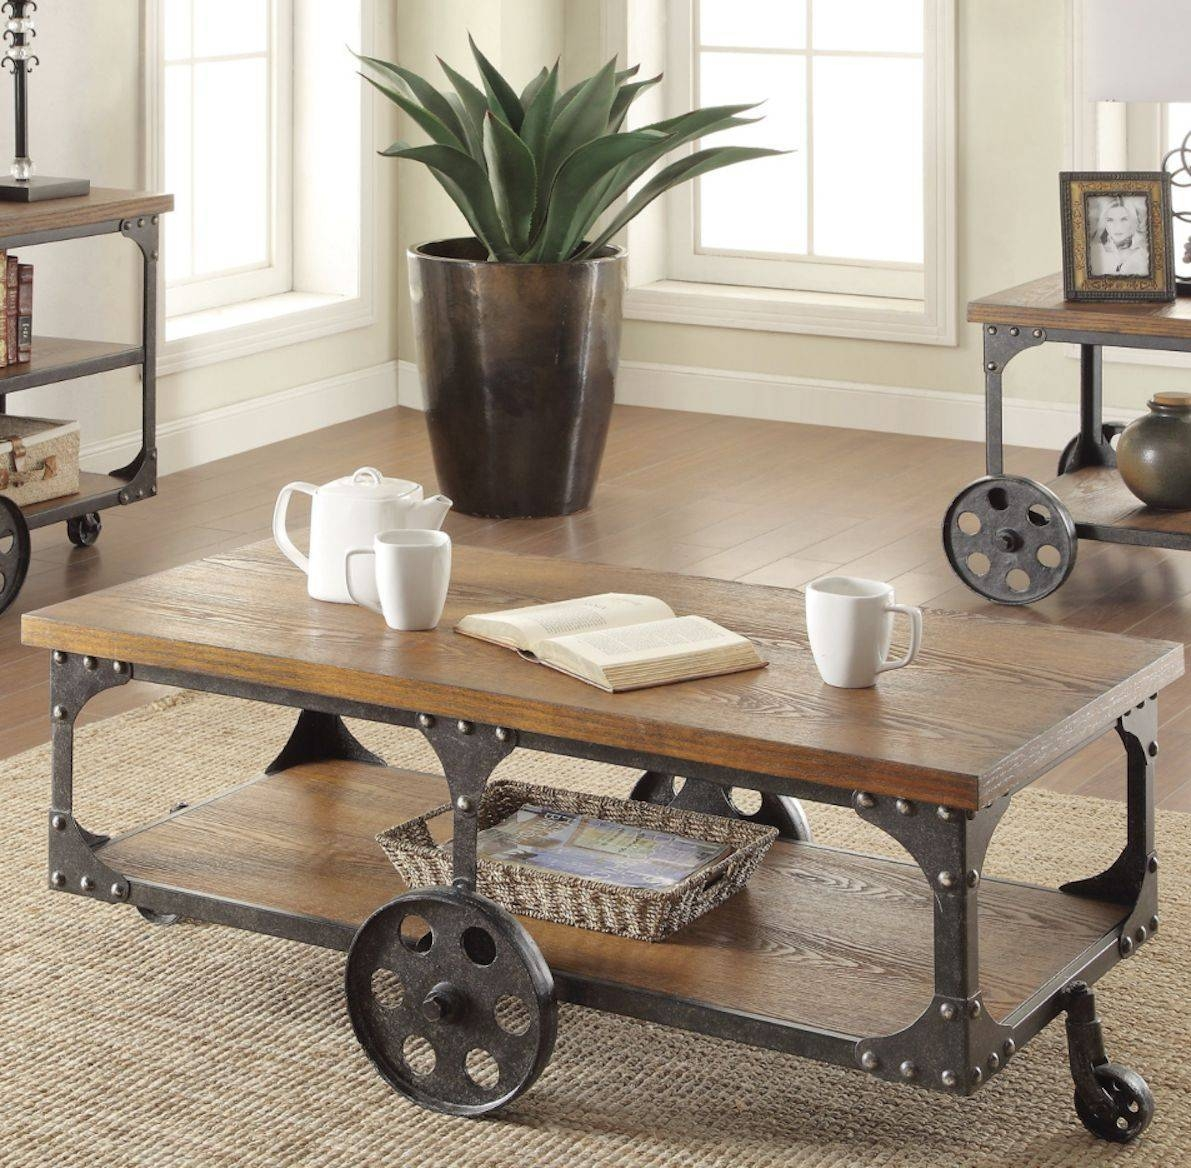 Industrial Coffee Table Utility Cart Storage Console Rustic Wood intended for Coffee Tables And Tv Stands (Image 8 of 30)